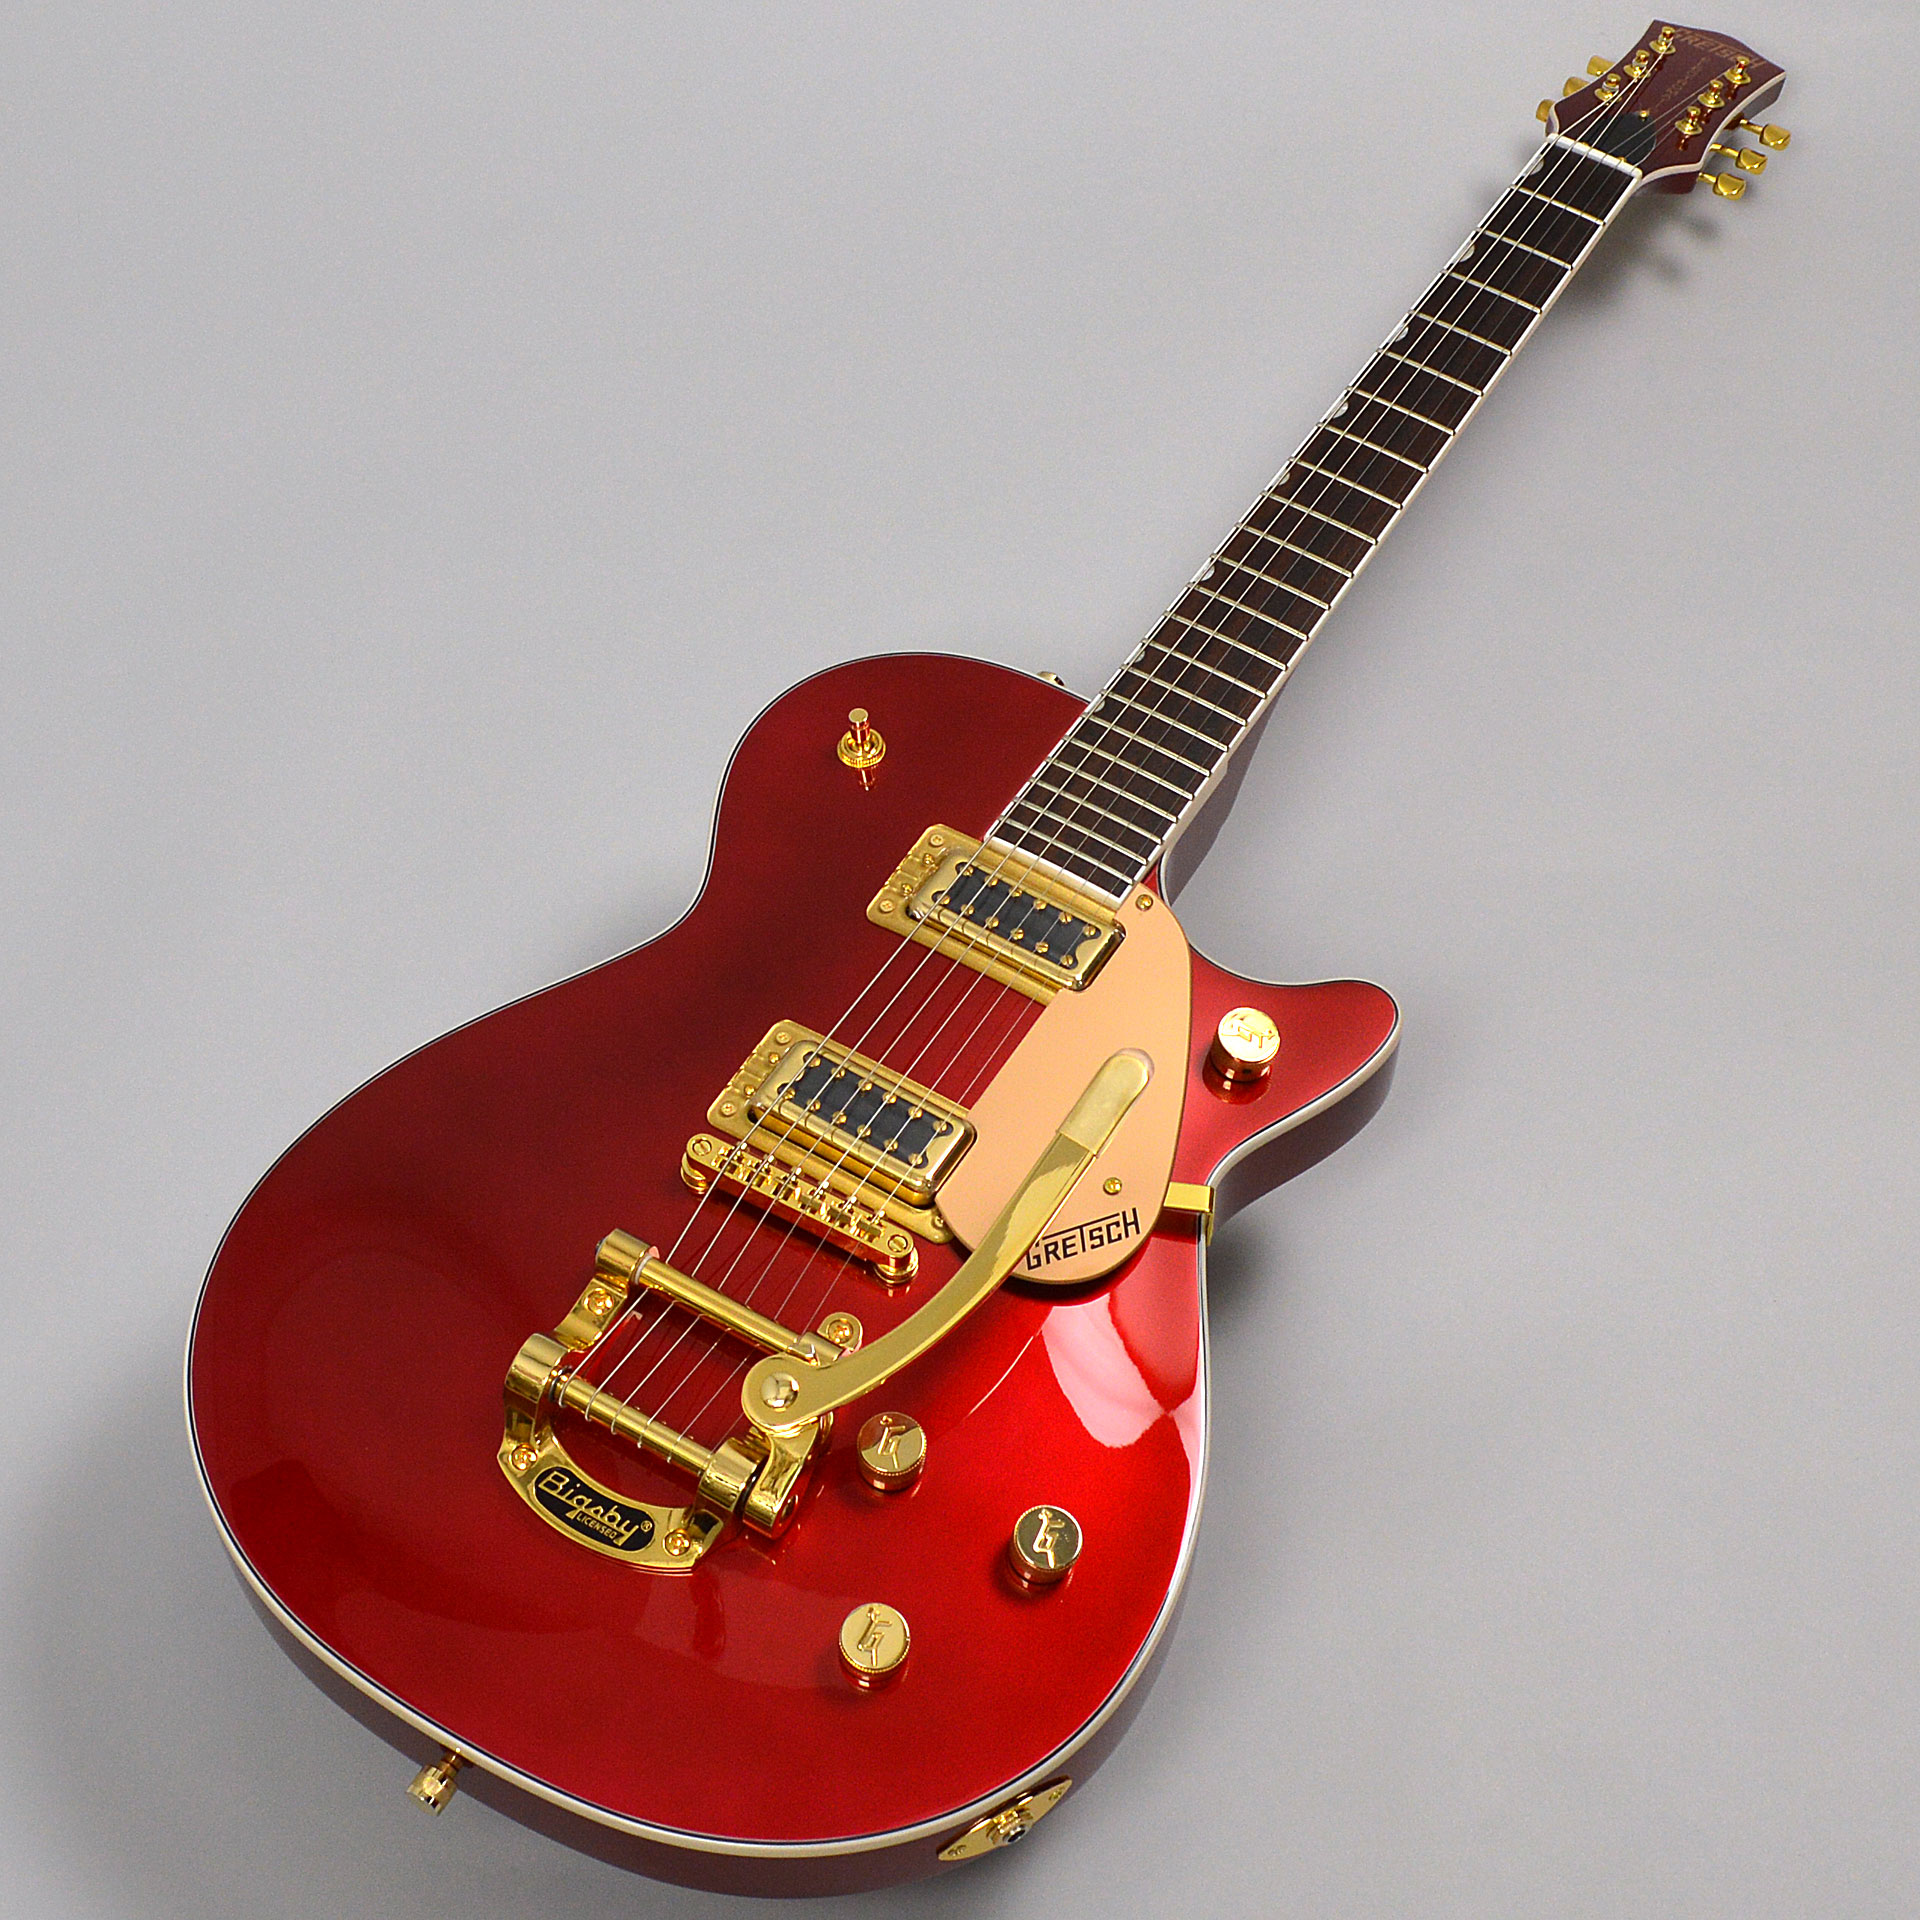 G5435TG Limited Edition Pro Jet with Bigsby Candy Apple Redの全体画像(縦)